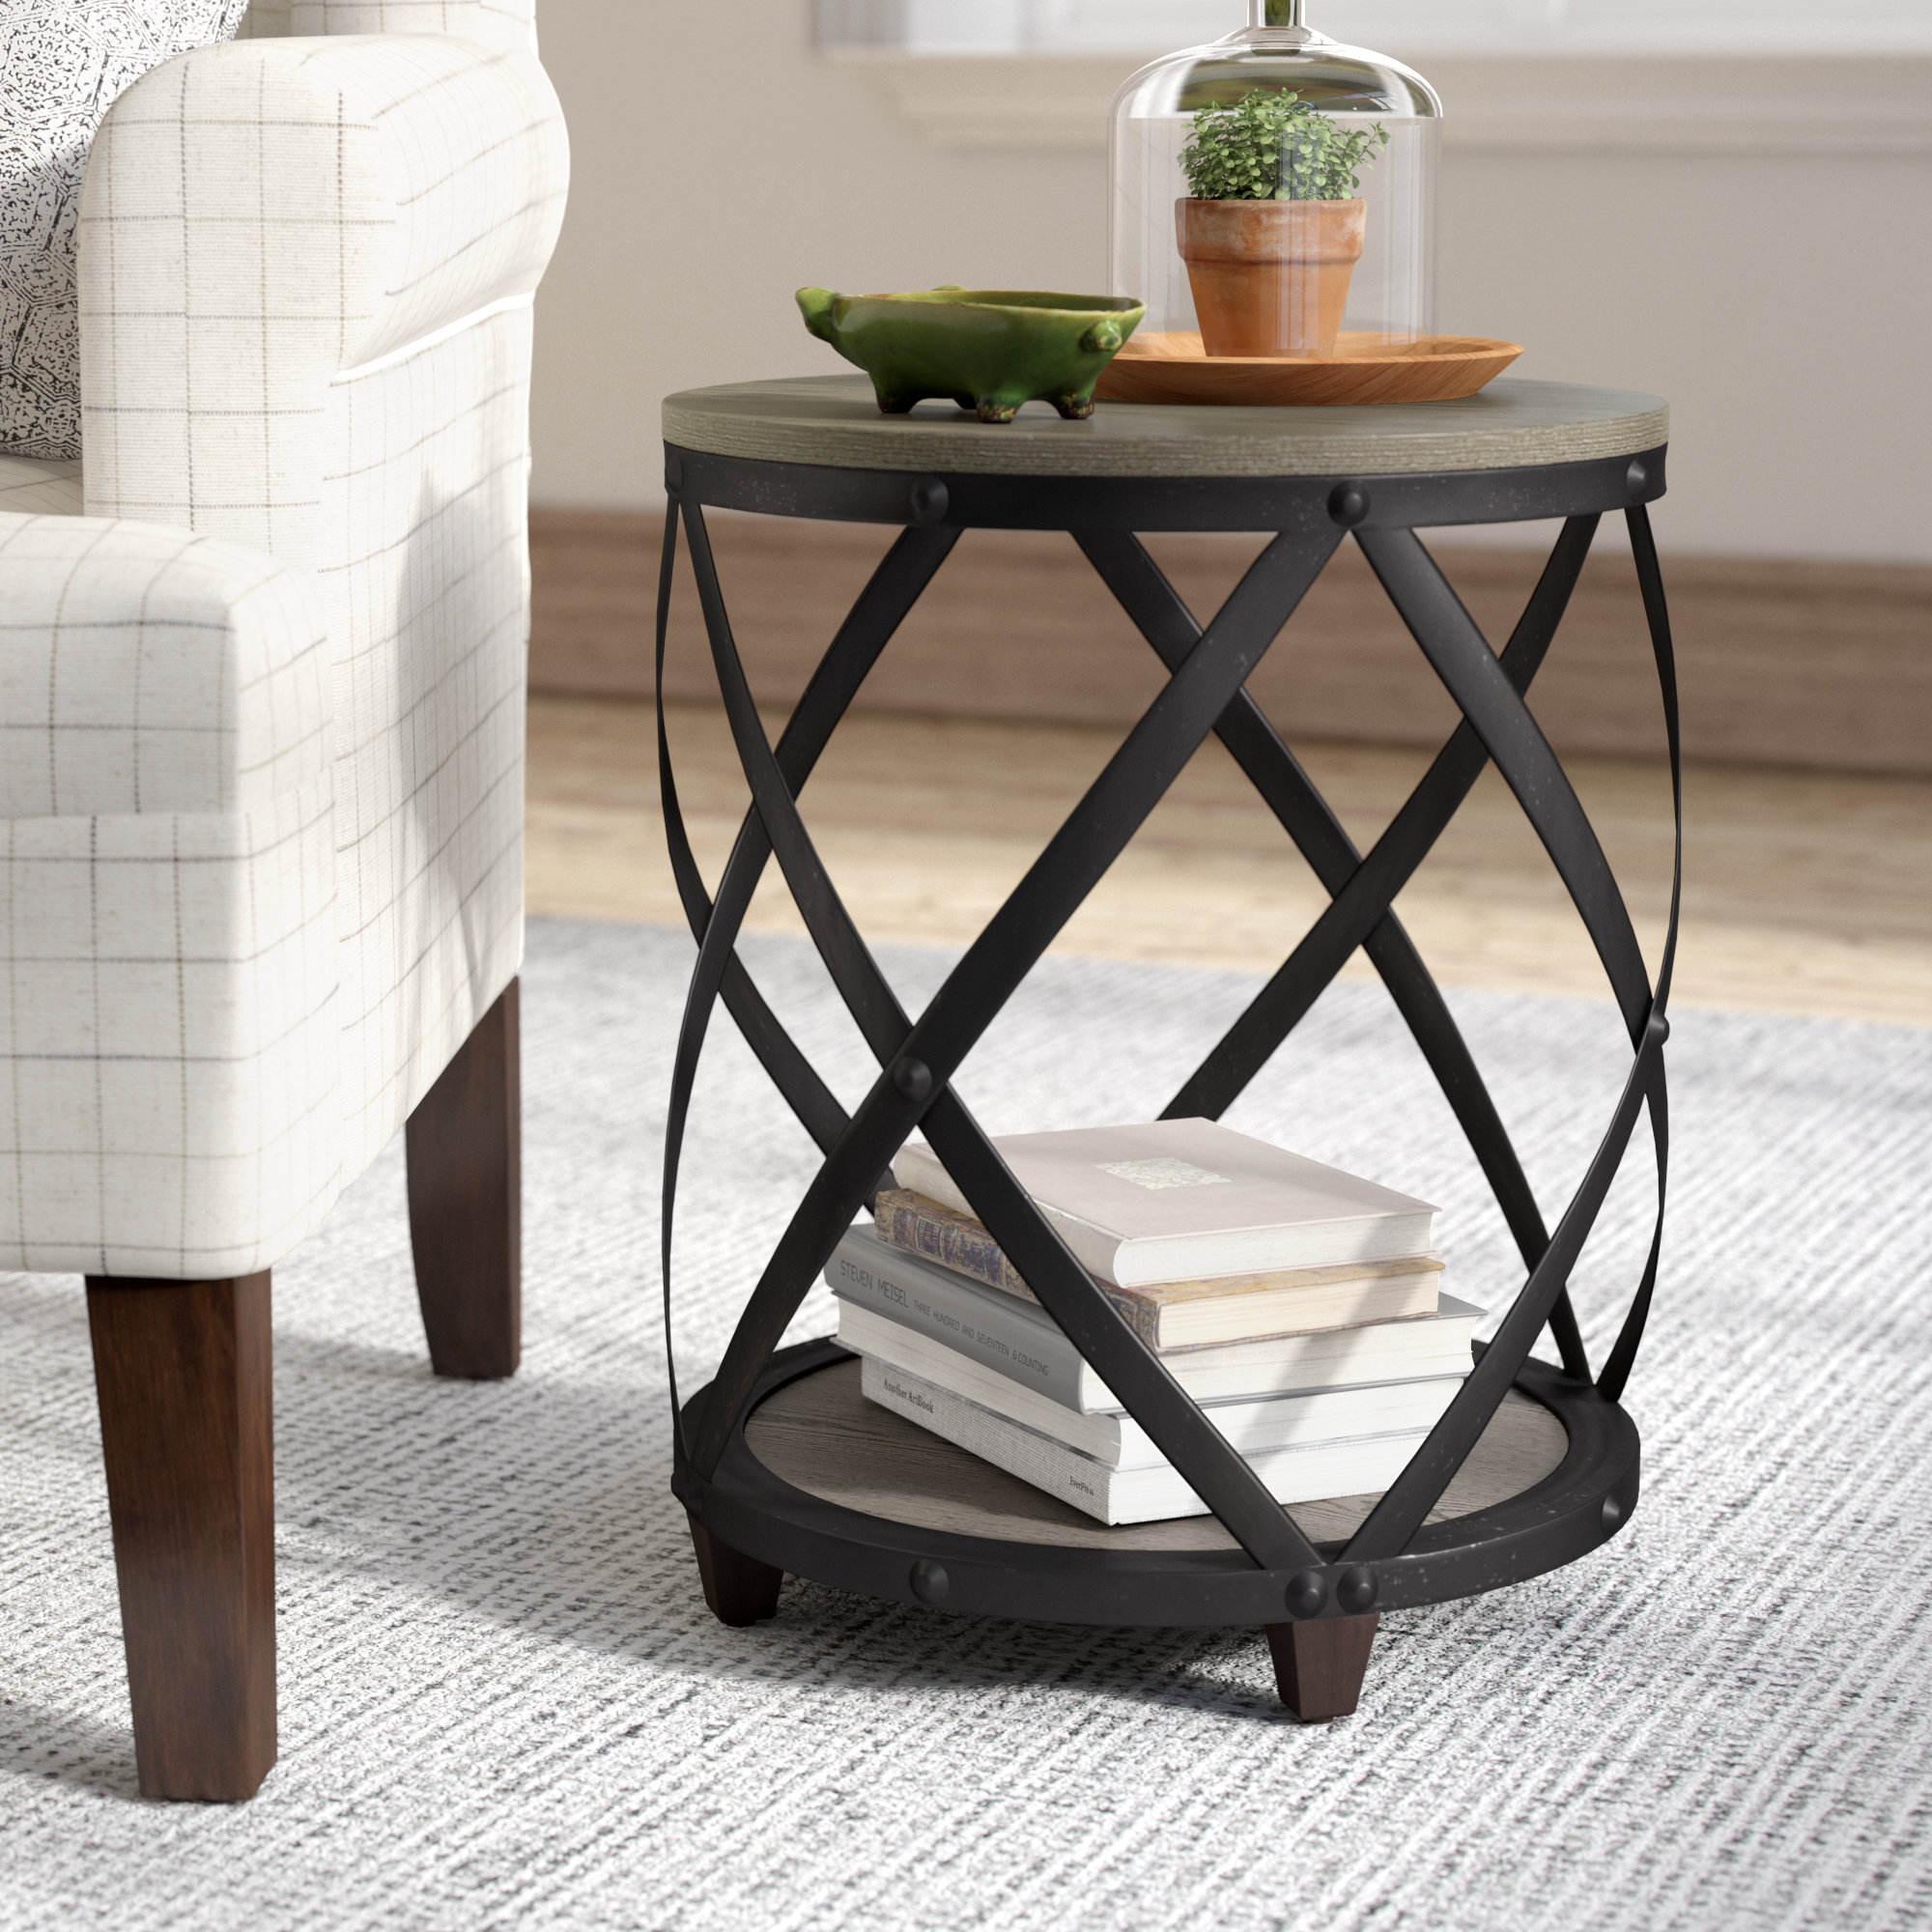 laurel foundry modern farmhouse rubino end table reviews rustic tables our sites coffee and occasional big lots living room rugs stickley chair metal glass dog cage plans